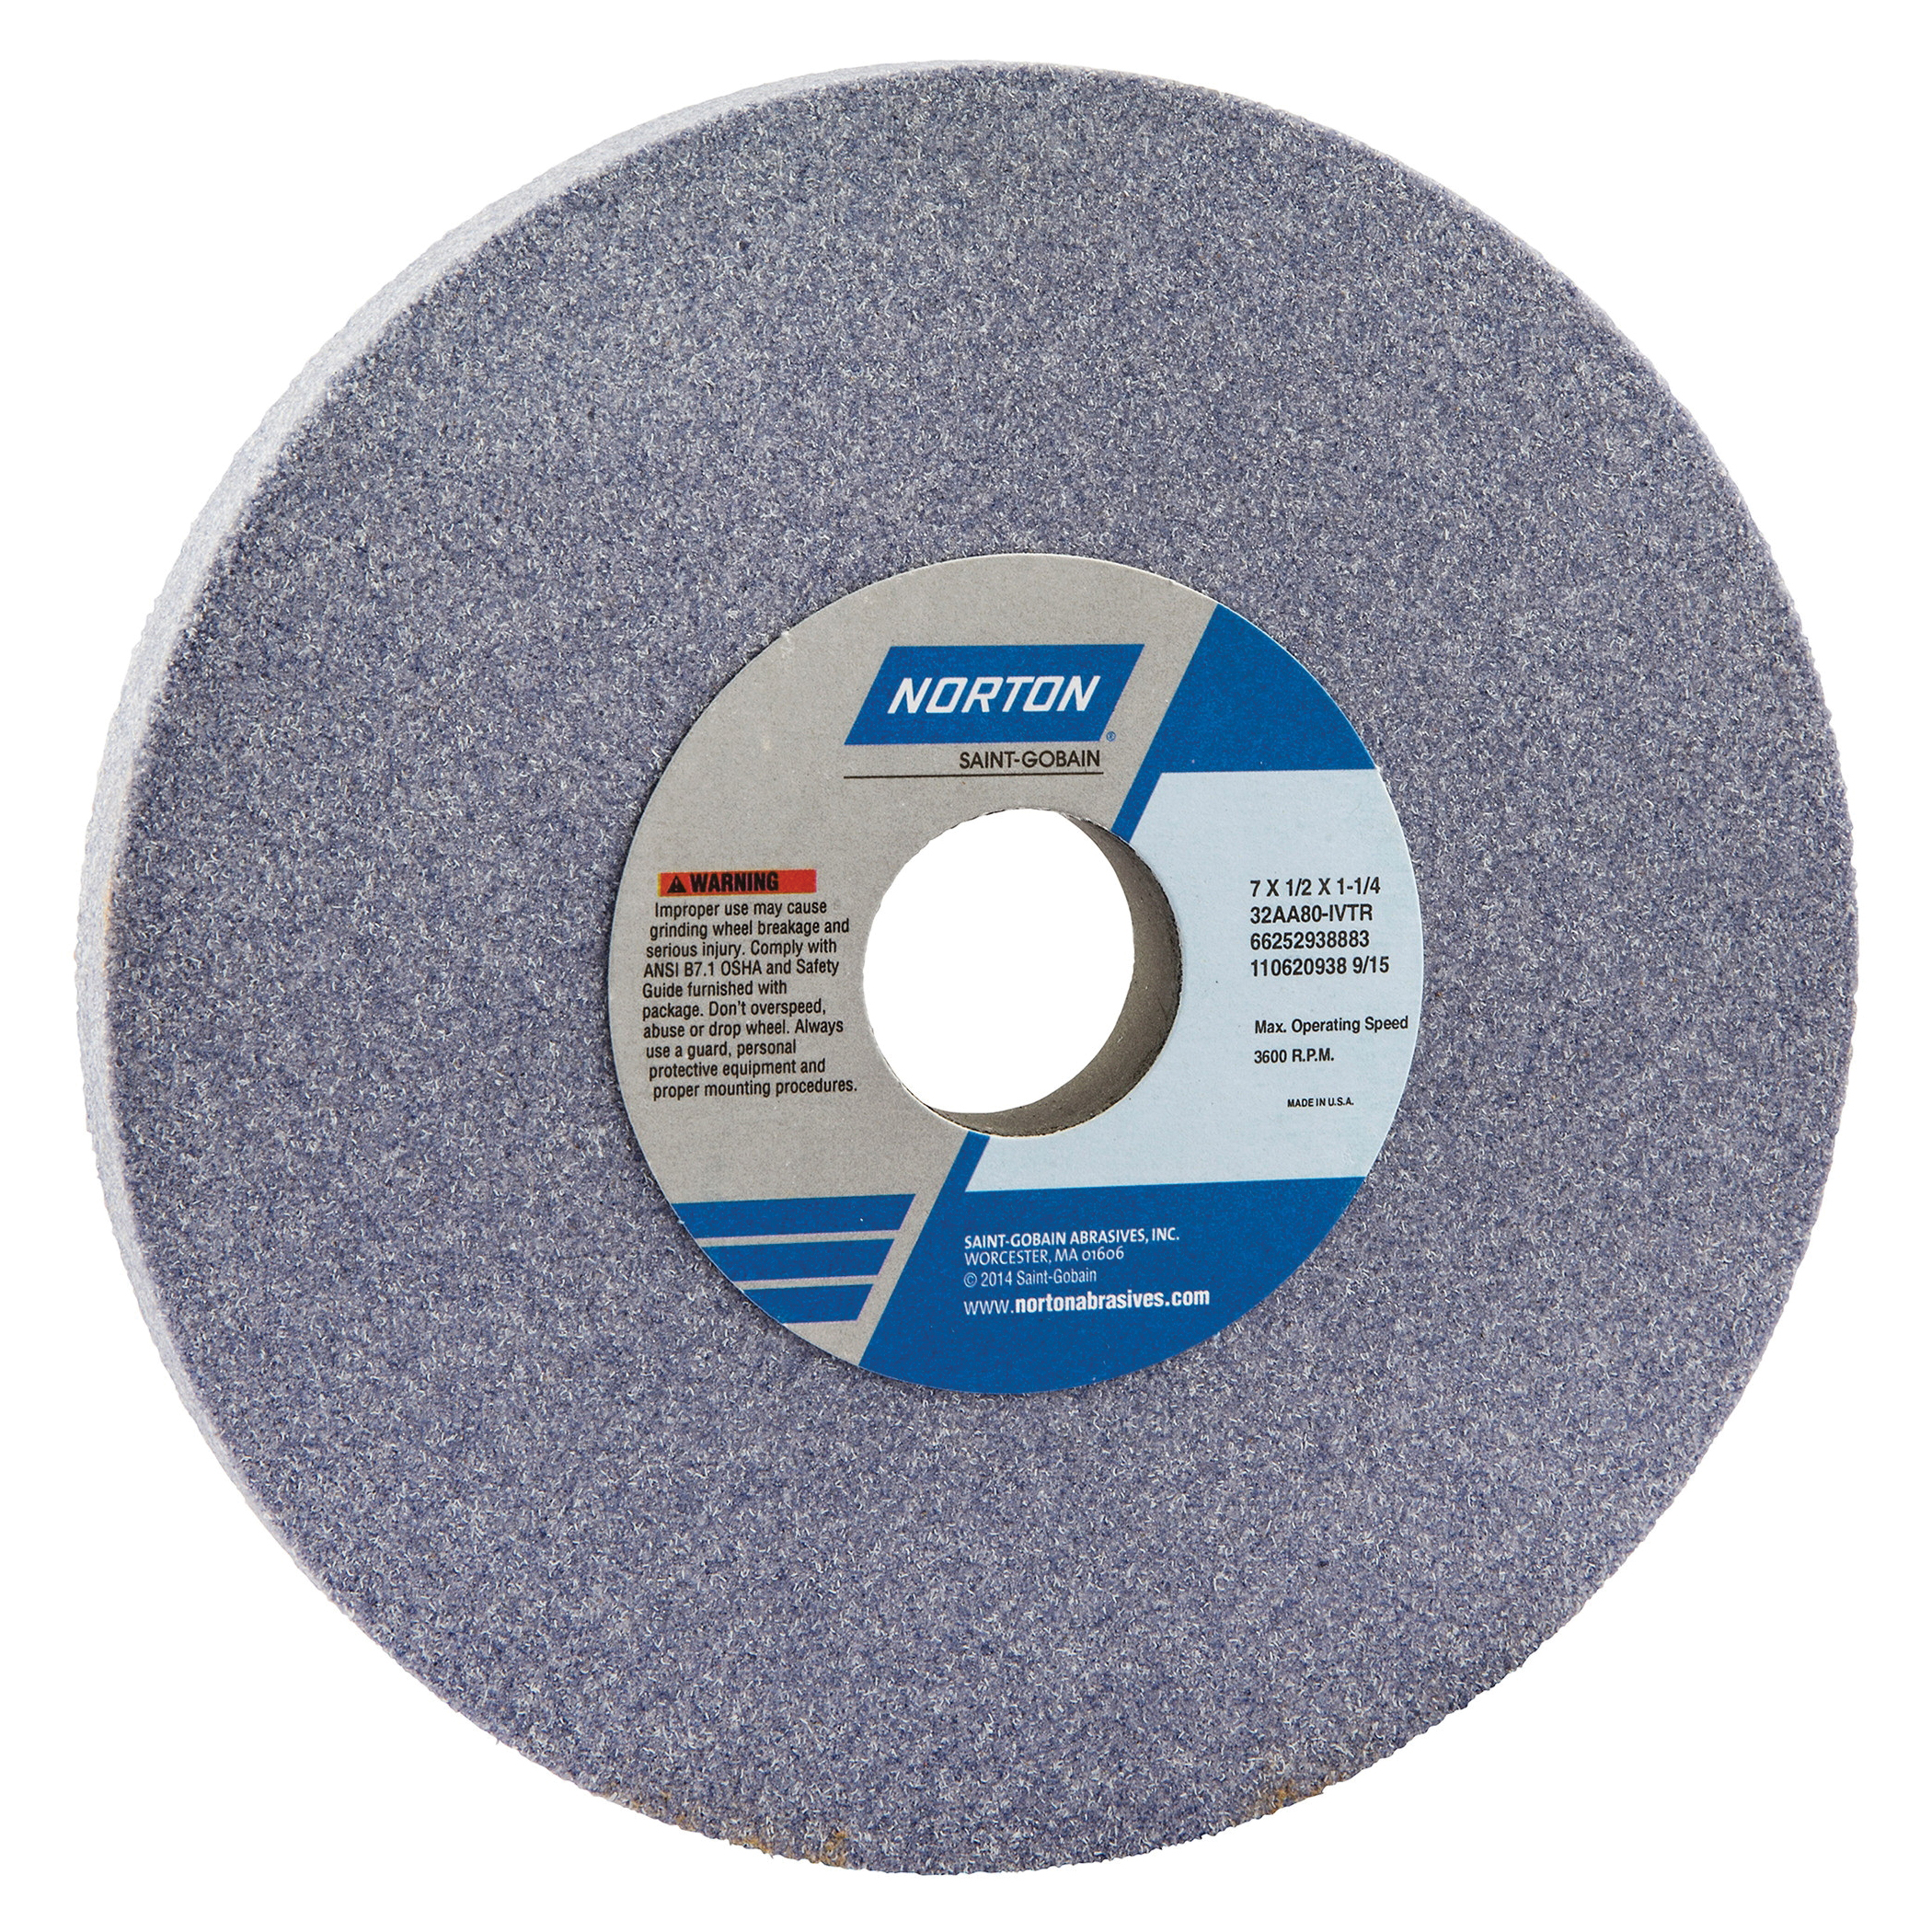 Norton® 66252938883 32AA Straight Toolroom Wheel, 7 in Dia x 1/2 in THK, 1-1/4 in Center Hole, 80 Grit, Aluminum Oxide Abrasive